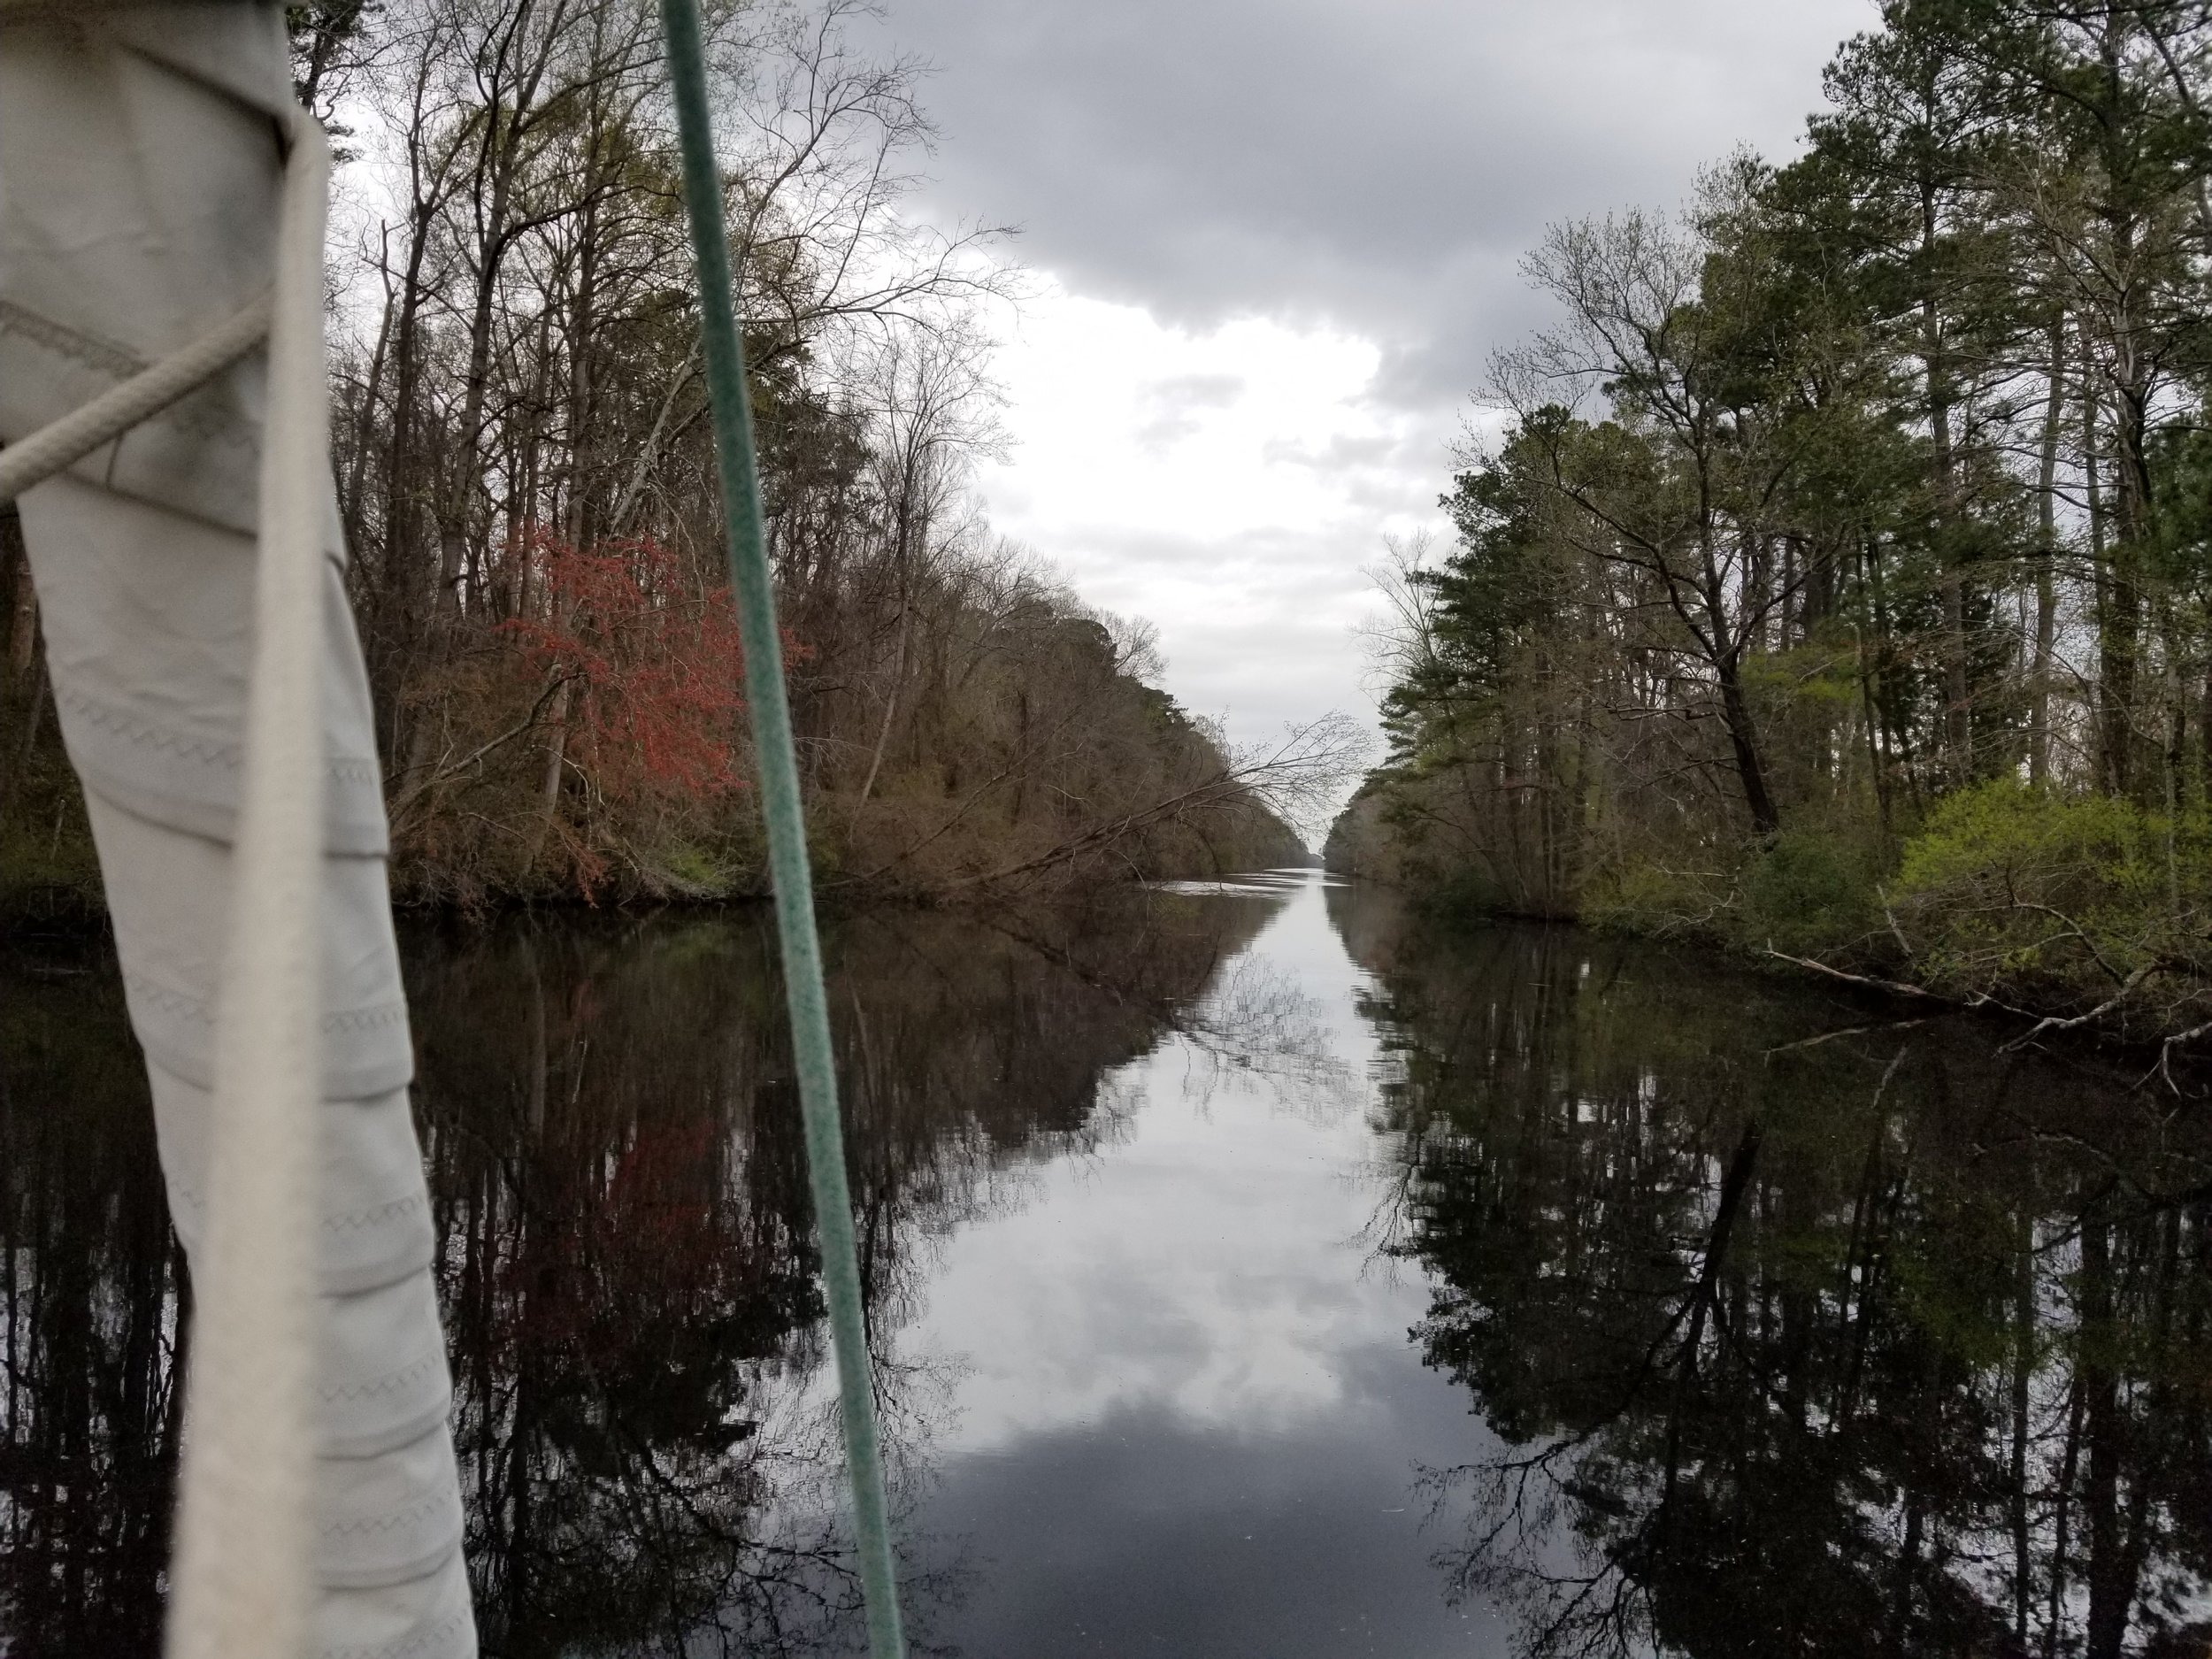 Note the tree fallen across the canal up ahead.  Dobbs had to carefully steer us close to the east bank in order to avoid its branches.